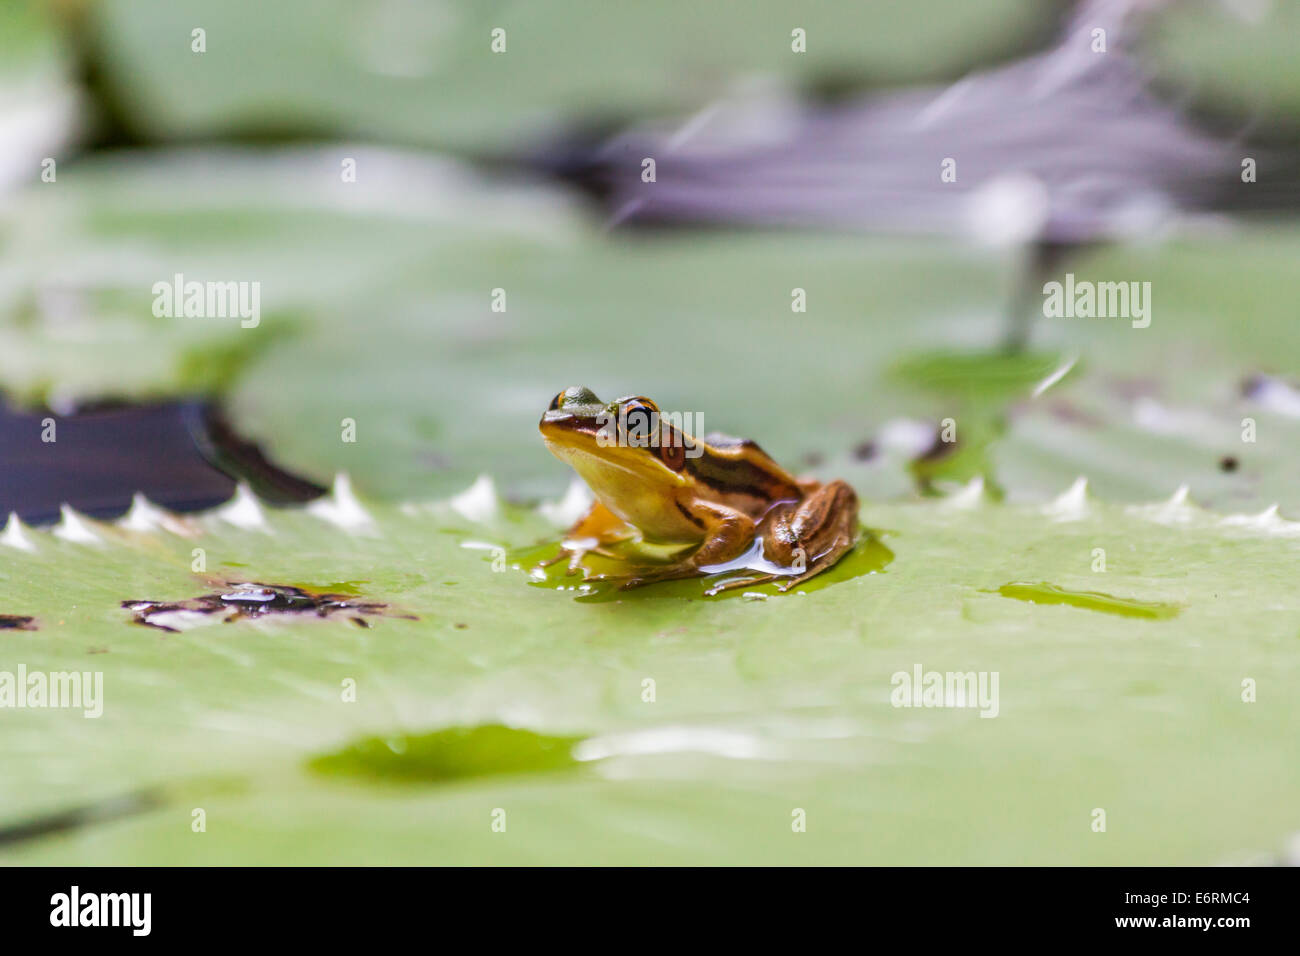 Common green frog (Hylarana erythraea) also known as green paddy frog, red-eared frog or leaf frog on a water lily - Stock Image